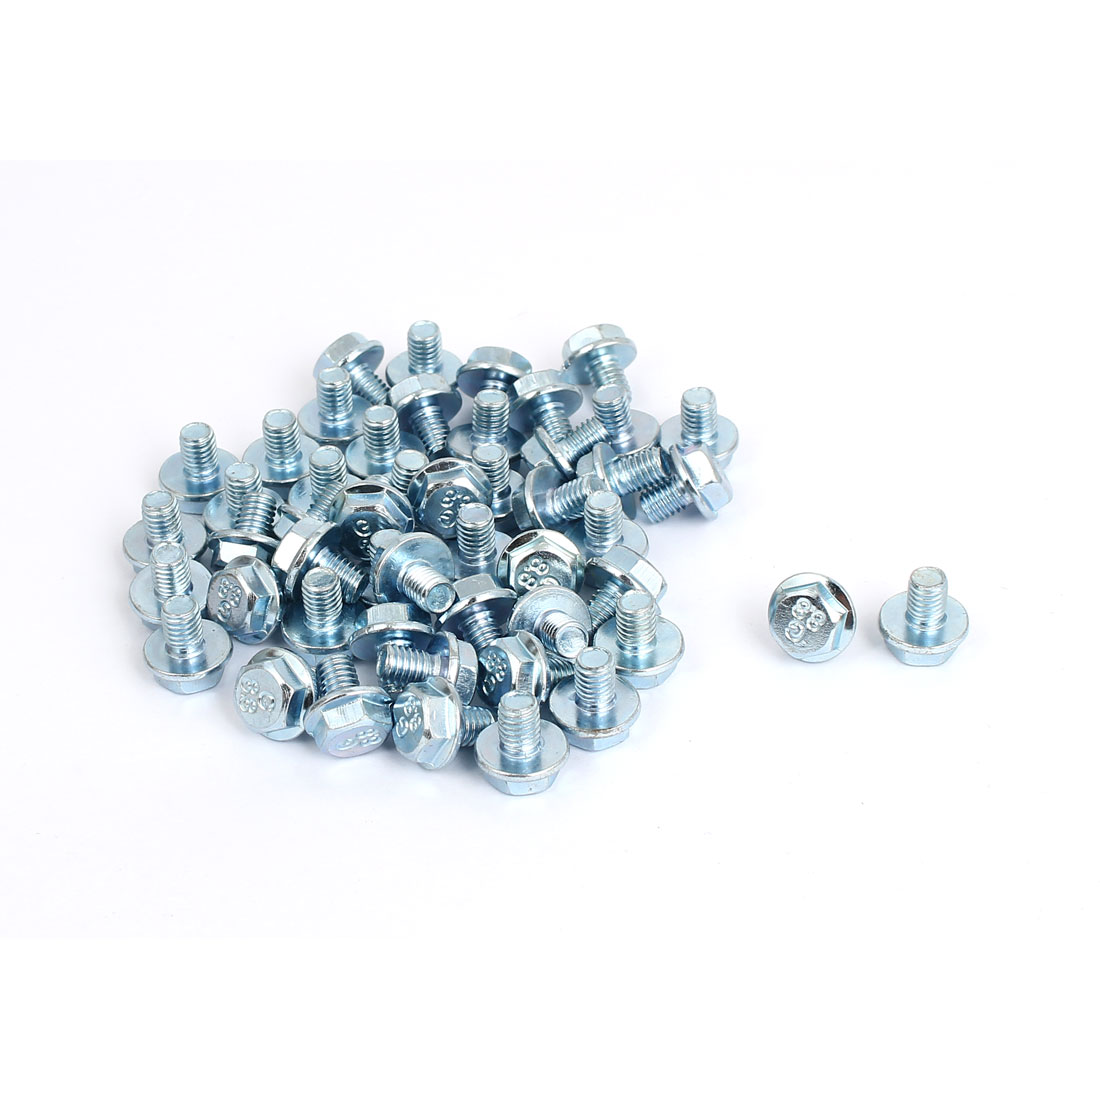 M6x8mm Grade 8.8 Metric Hex Flange Screws Bolts 50pcs